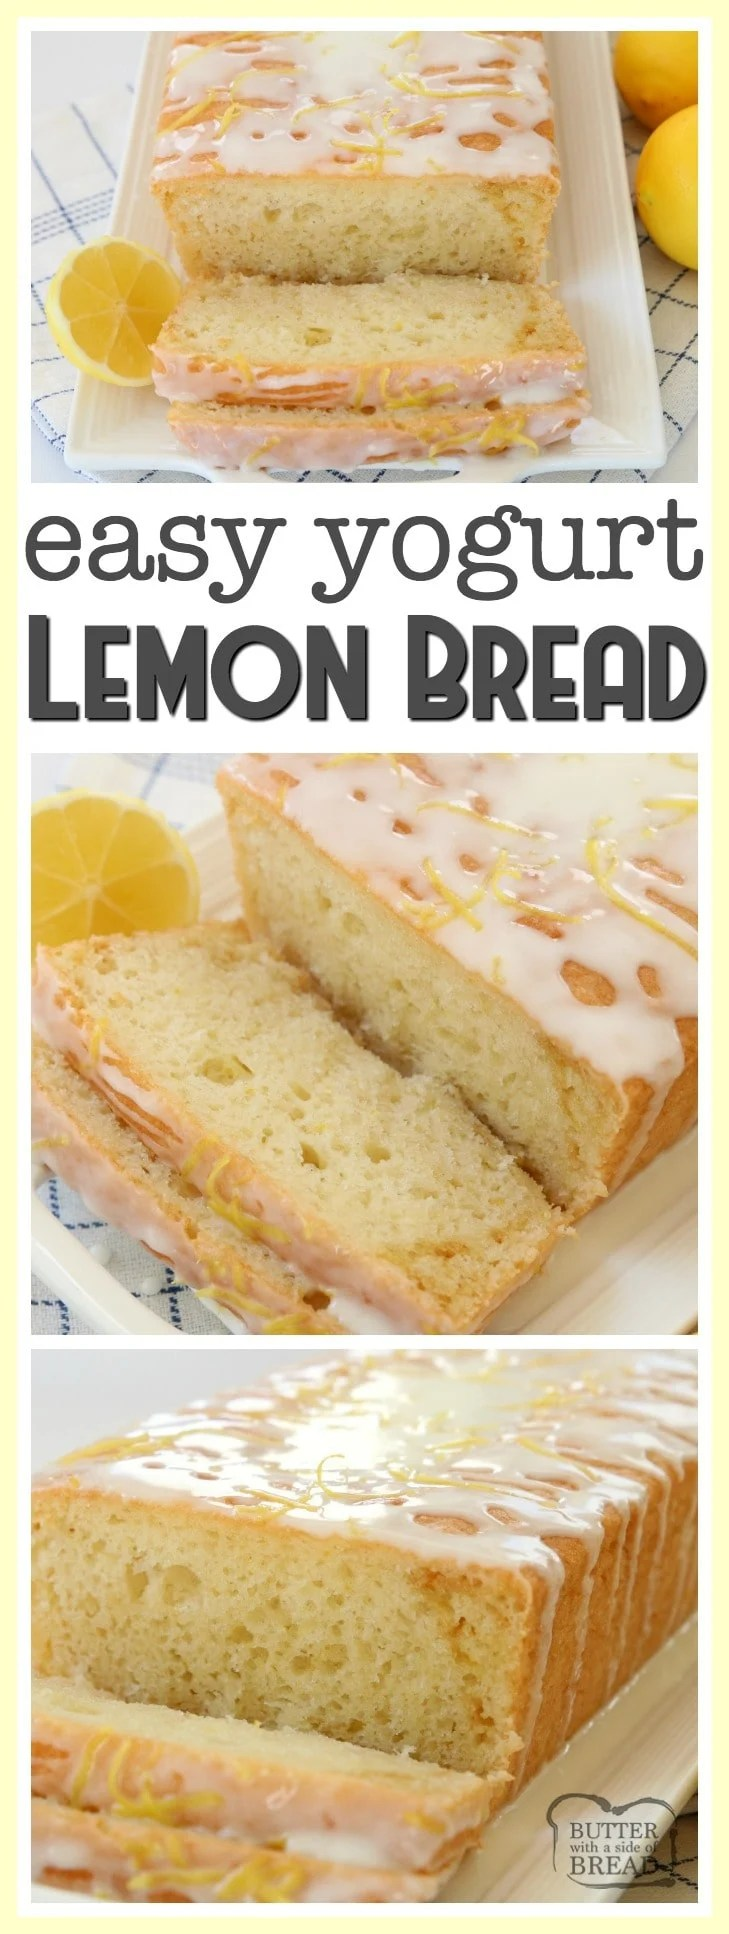 Yogurt Lemon Bread is made with tangy lemon yogurt & topped with a sweet lemon glaze. Incredible flavor and perfectly light & moist lemon bread recipe. The addition of yogurt to this lemon bread recipe is such a great idea as it keeps the bread moist and adds a nice delicate texture. Butter With A Side of Bread